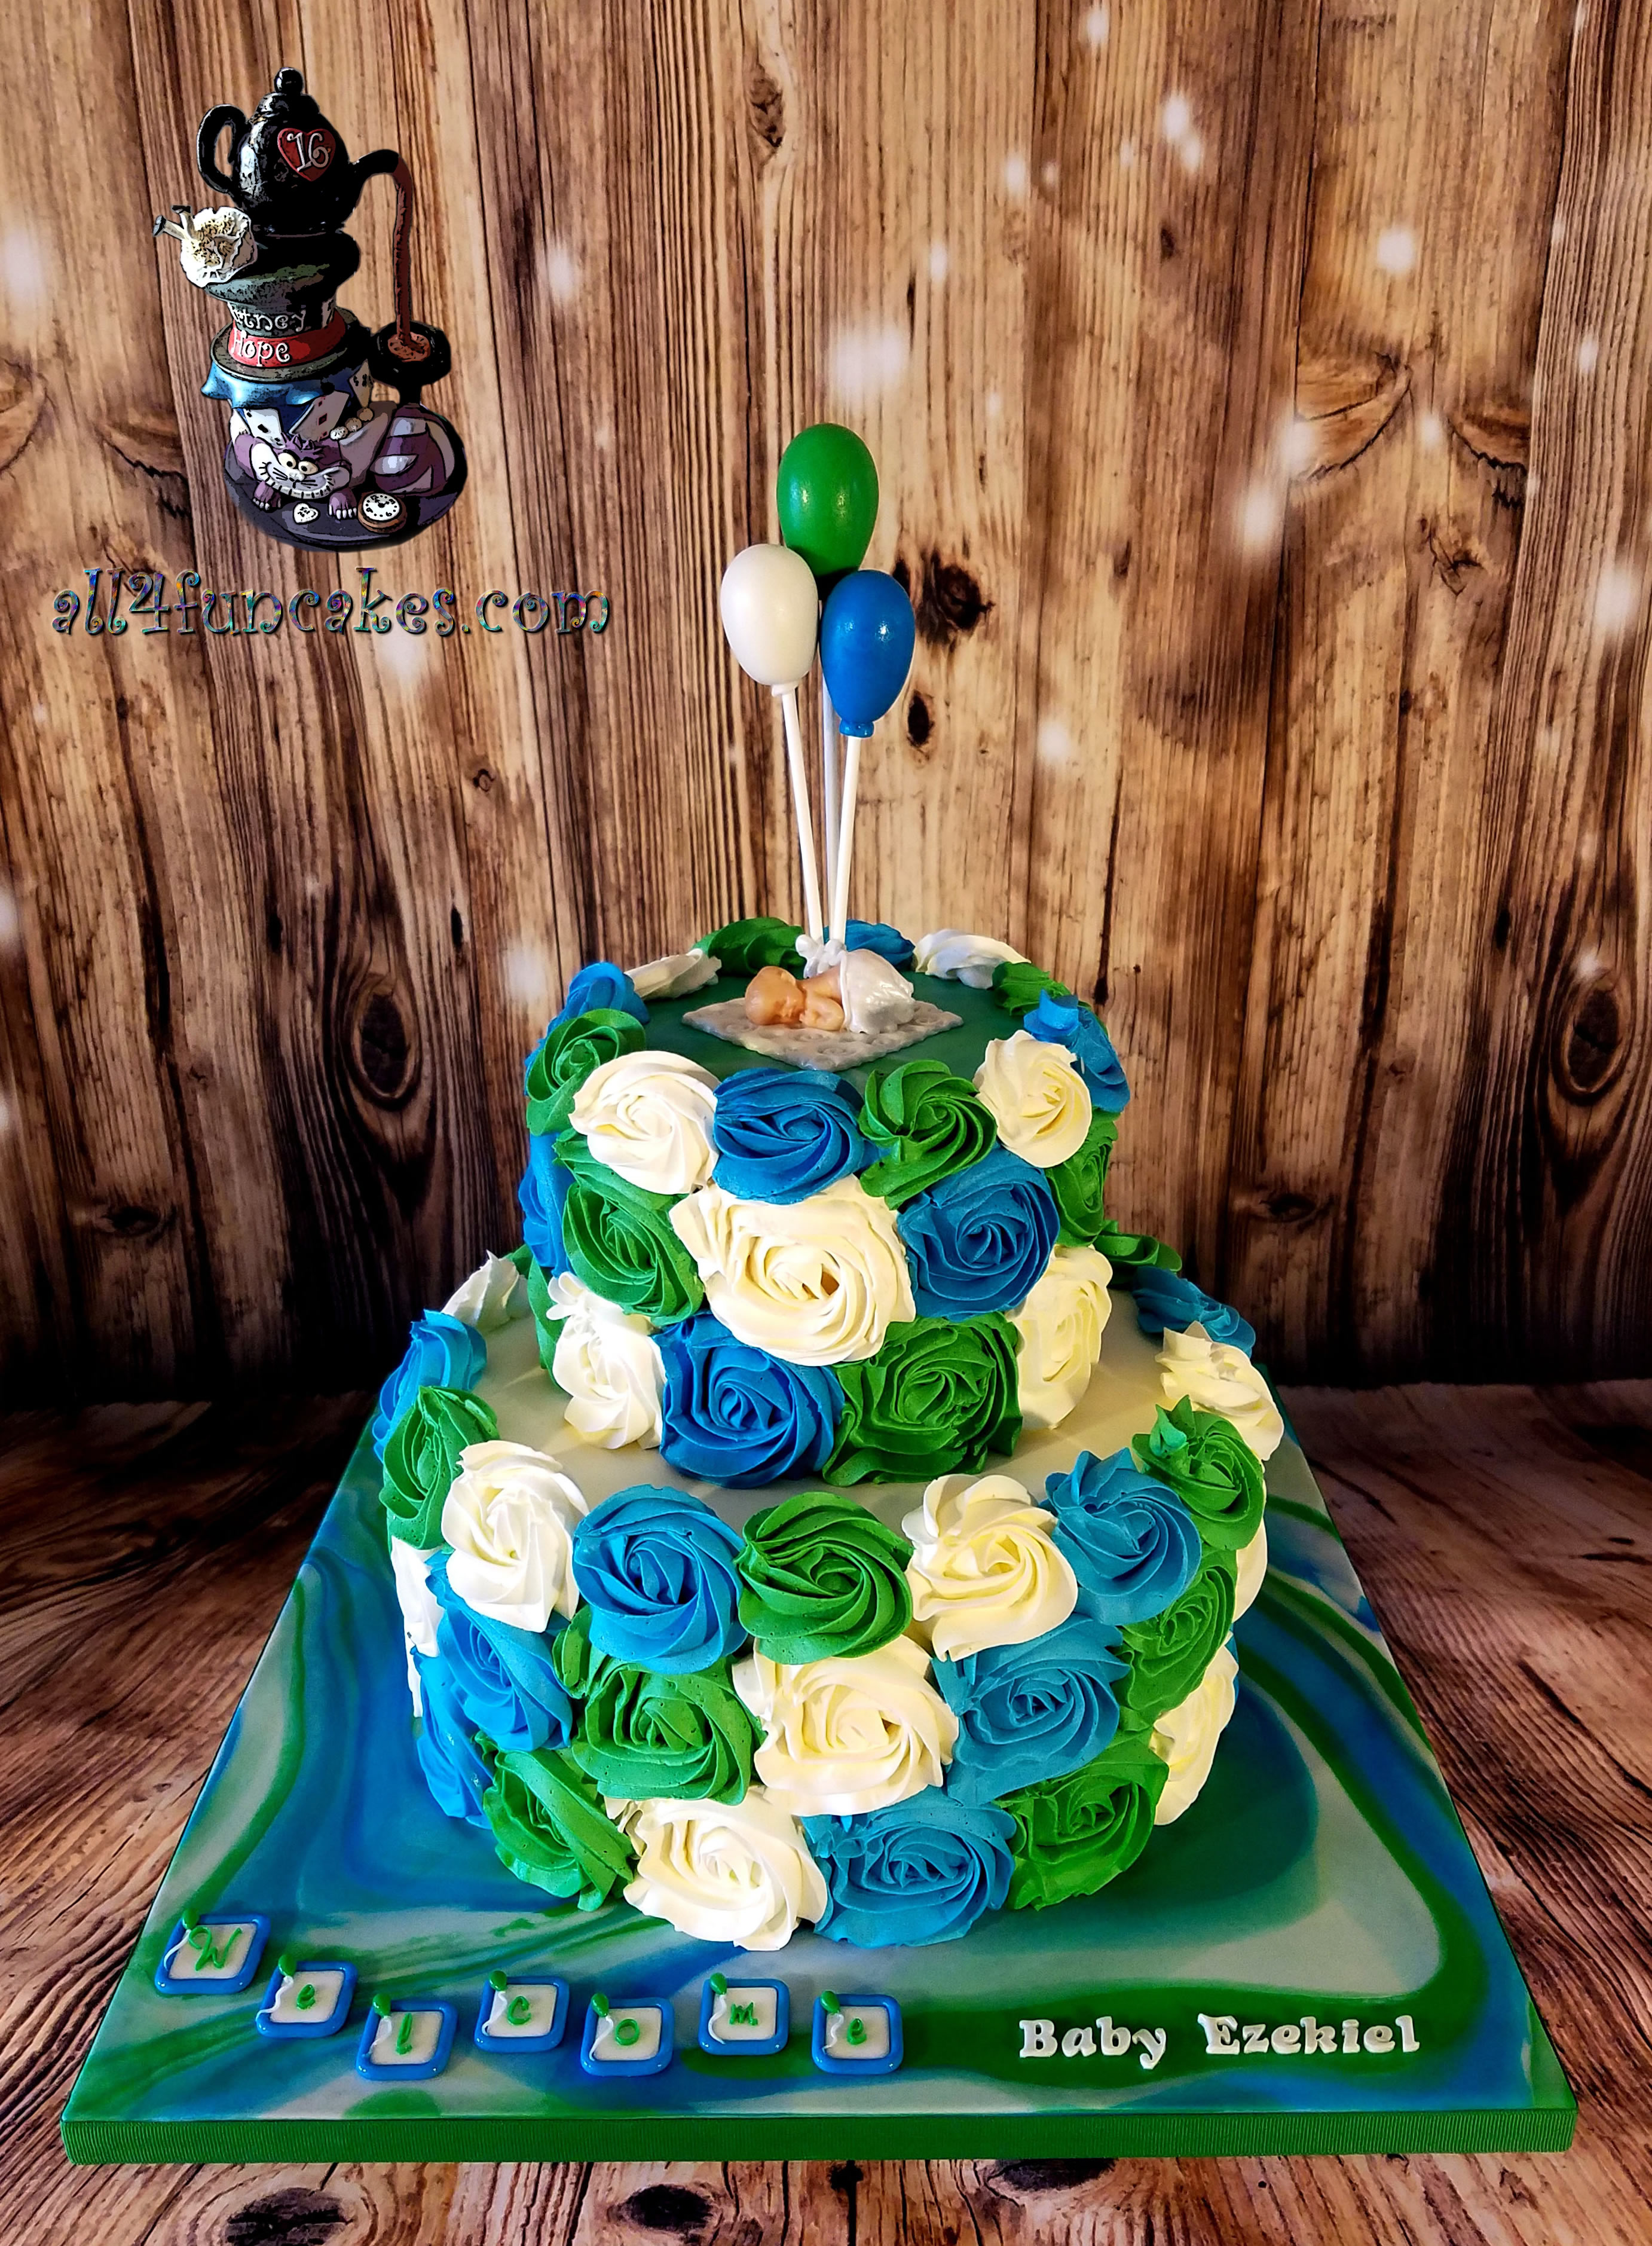 Balloons and Roses Baby Shower Special Occasion Cake by All4Fun Cakes  LLC